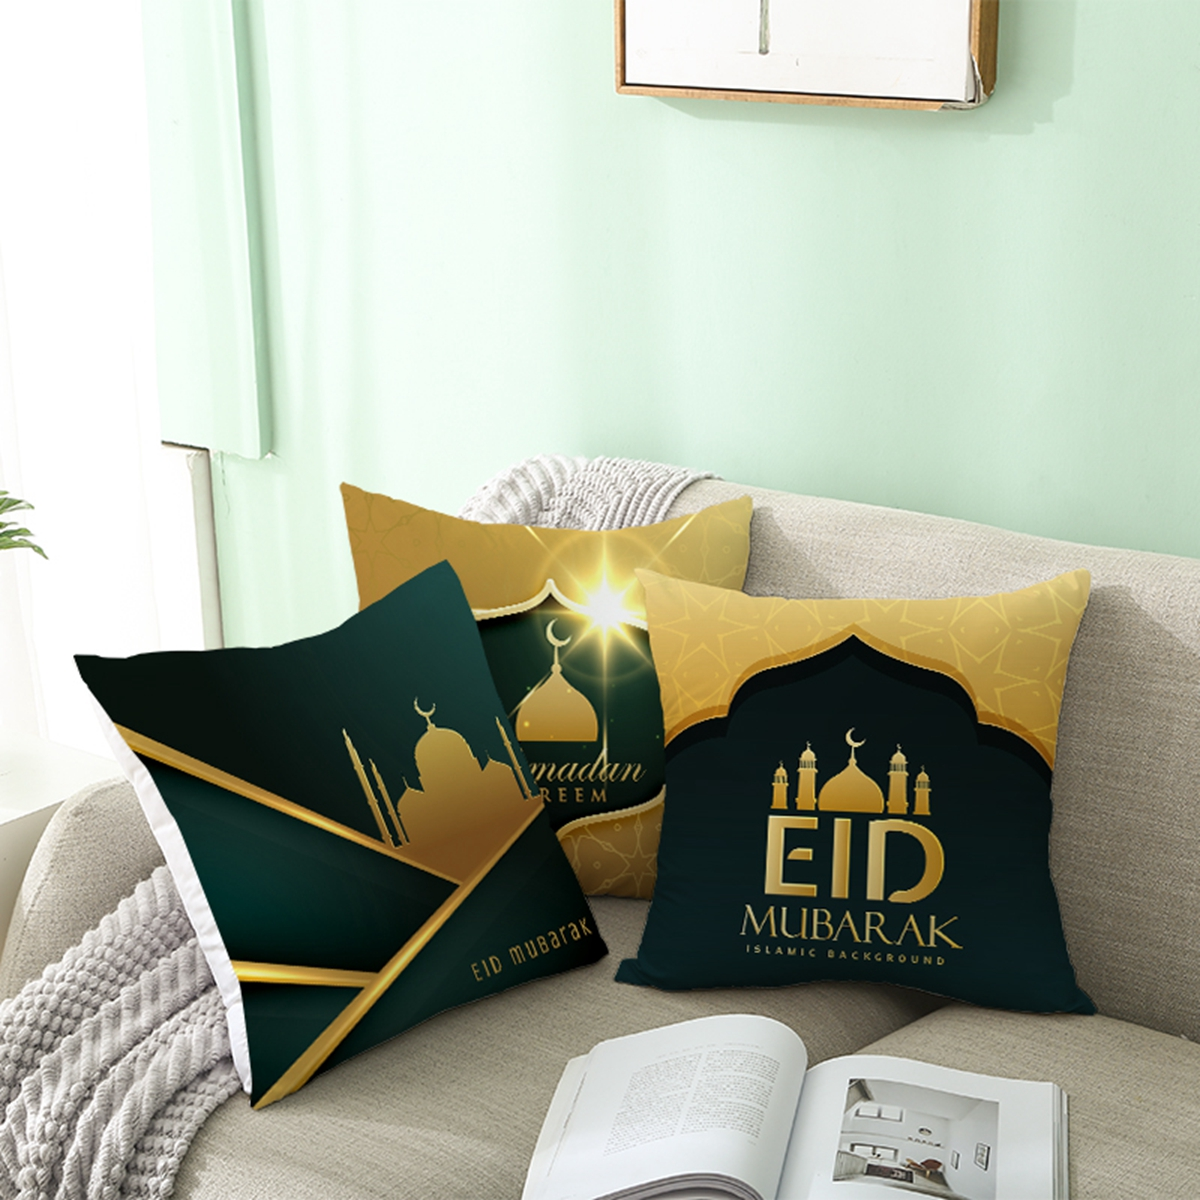 FENGRISE Eid Pillow Cover 2020 Ramada Decoration For Home Happy Eid Mubarak Islamic Muslim Party Decor EID AL Adha Pillowcase